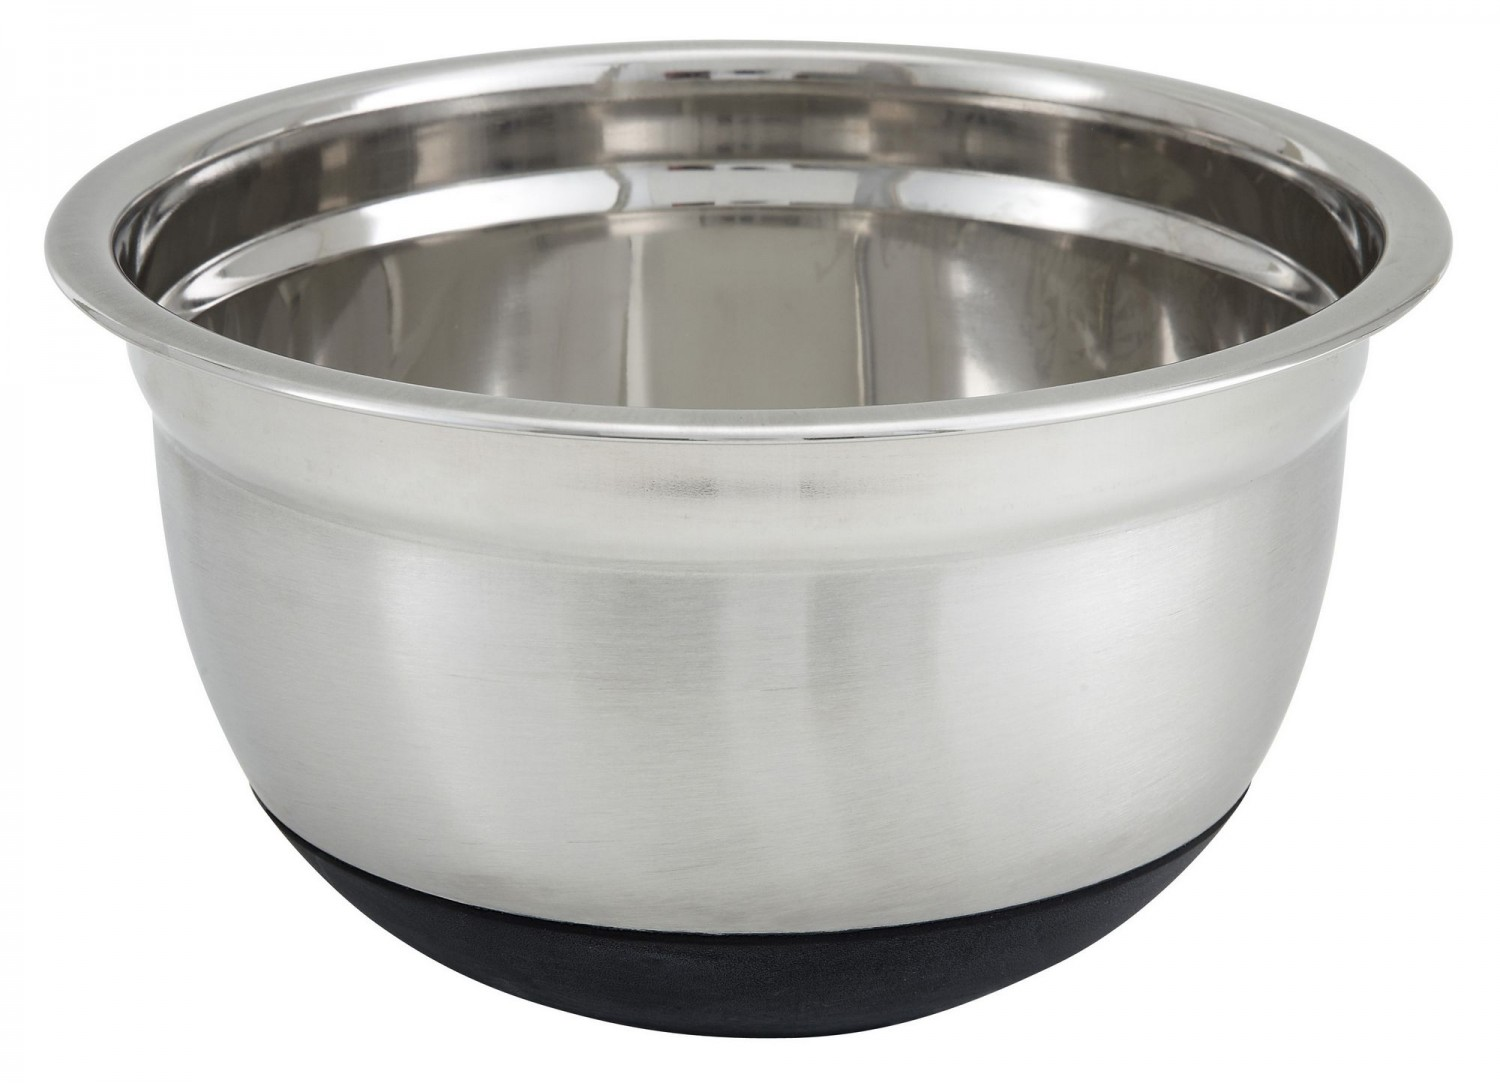 Winco MXRU-500 German Mixing Bowl 5 Qt.